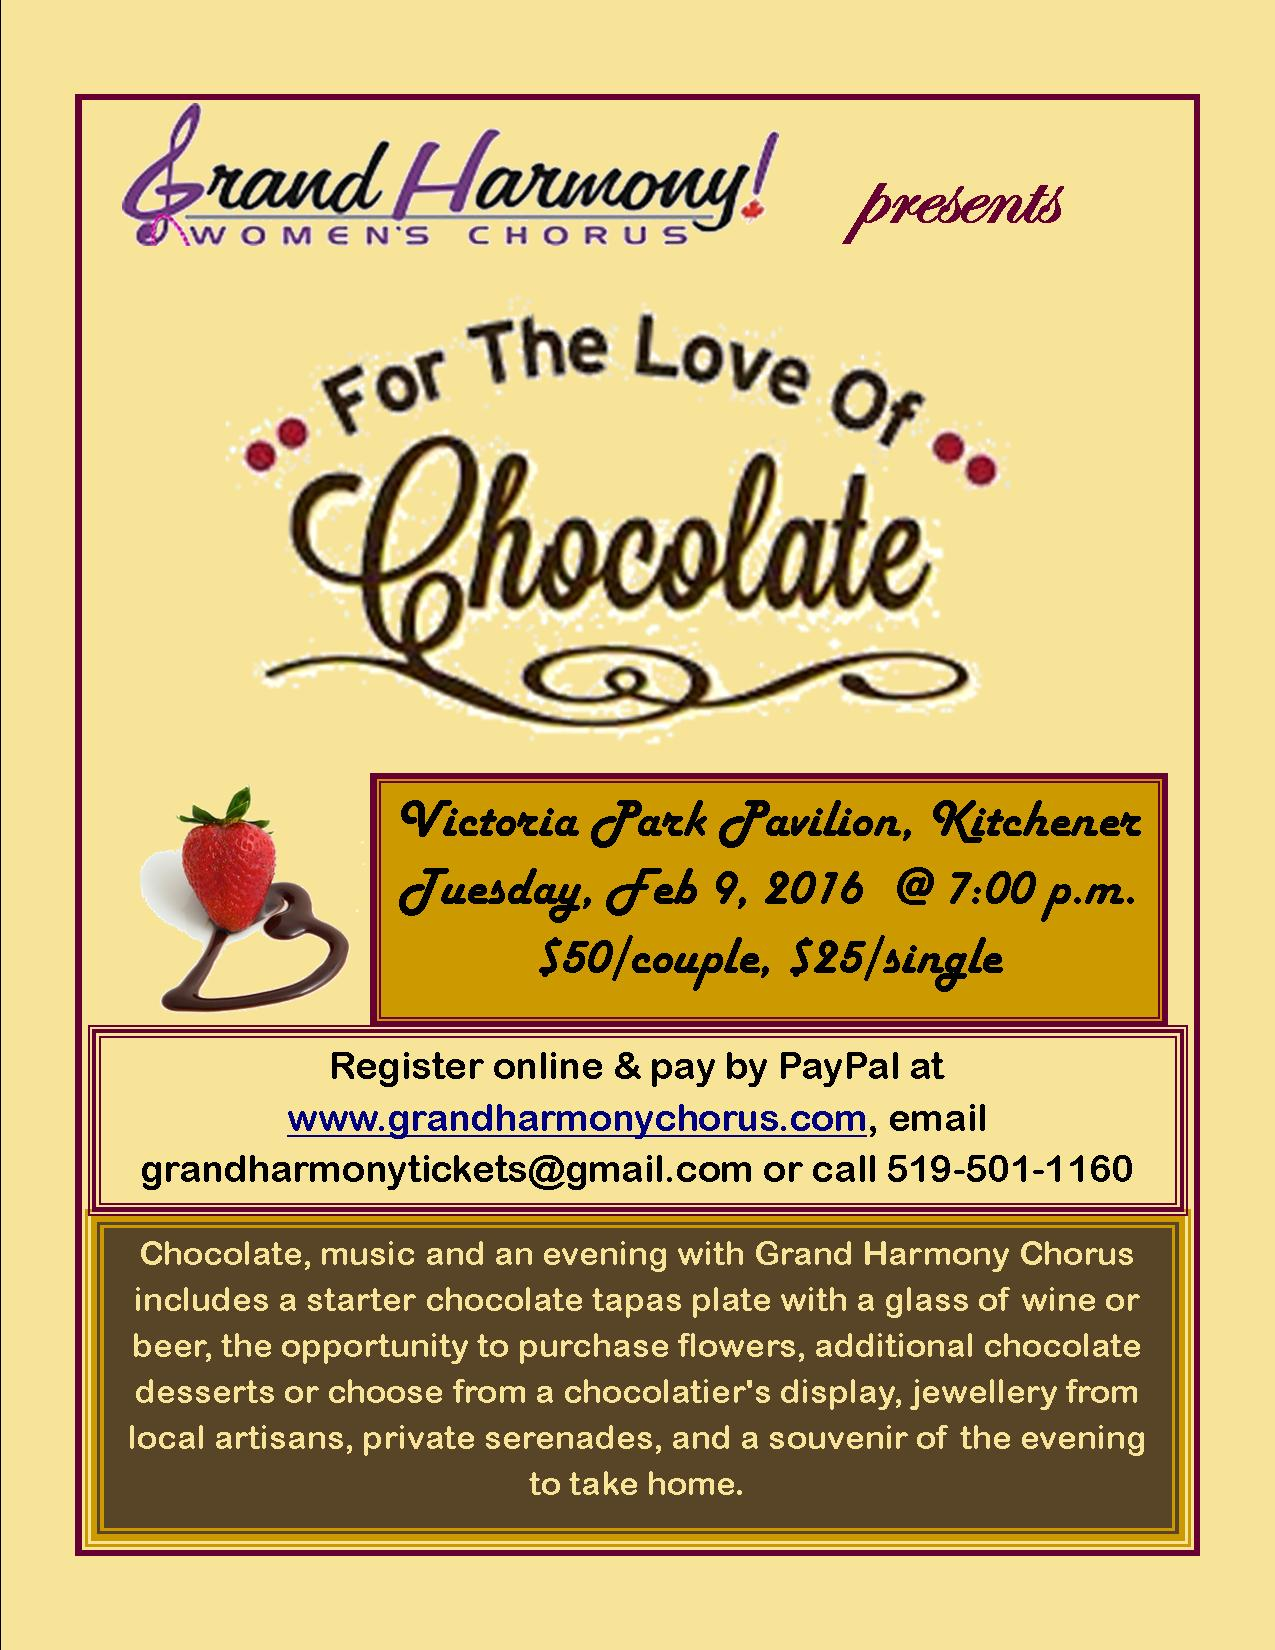 For the Love of Chocolate poster